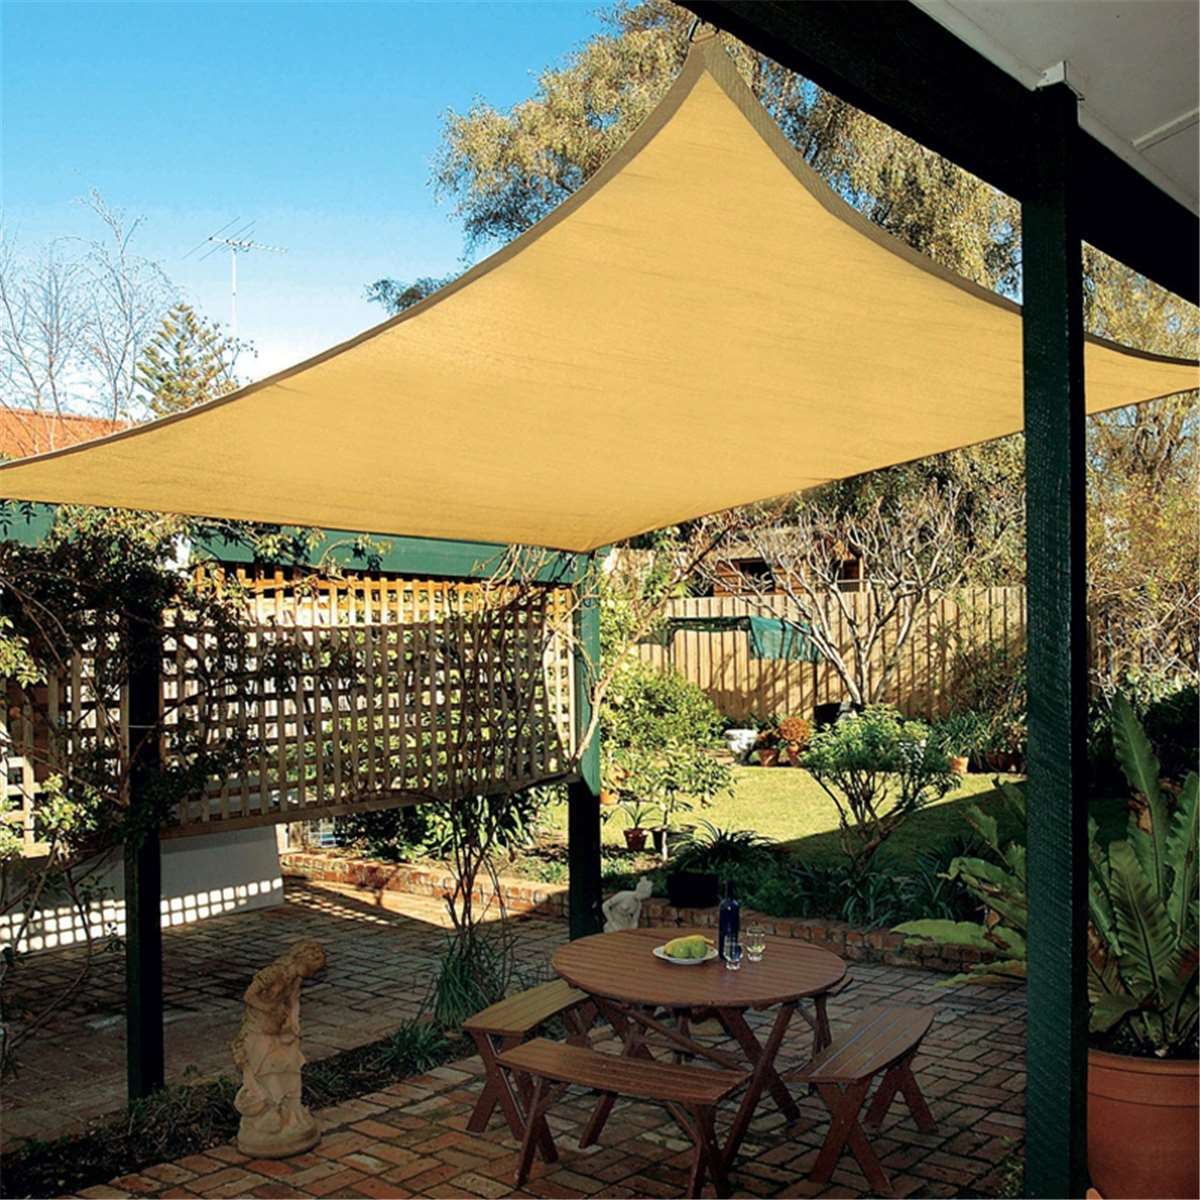 Superior Polyester Rectangle Sun Shade Awning 6X4m Sail Outdoor Garden UV Protection  Top Canopy Cover Patio Pool